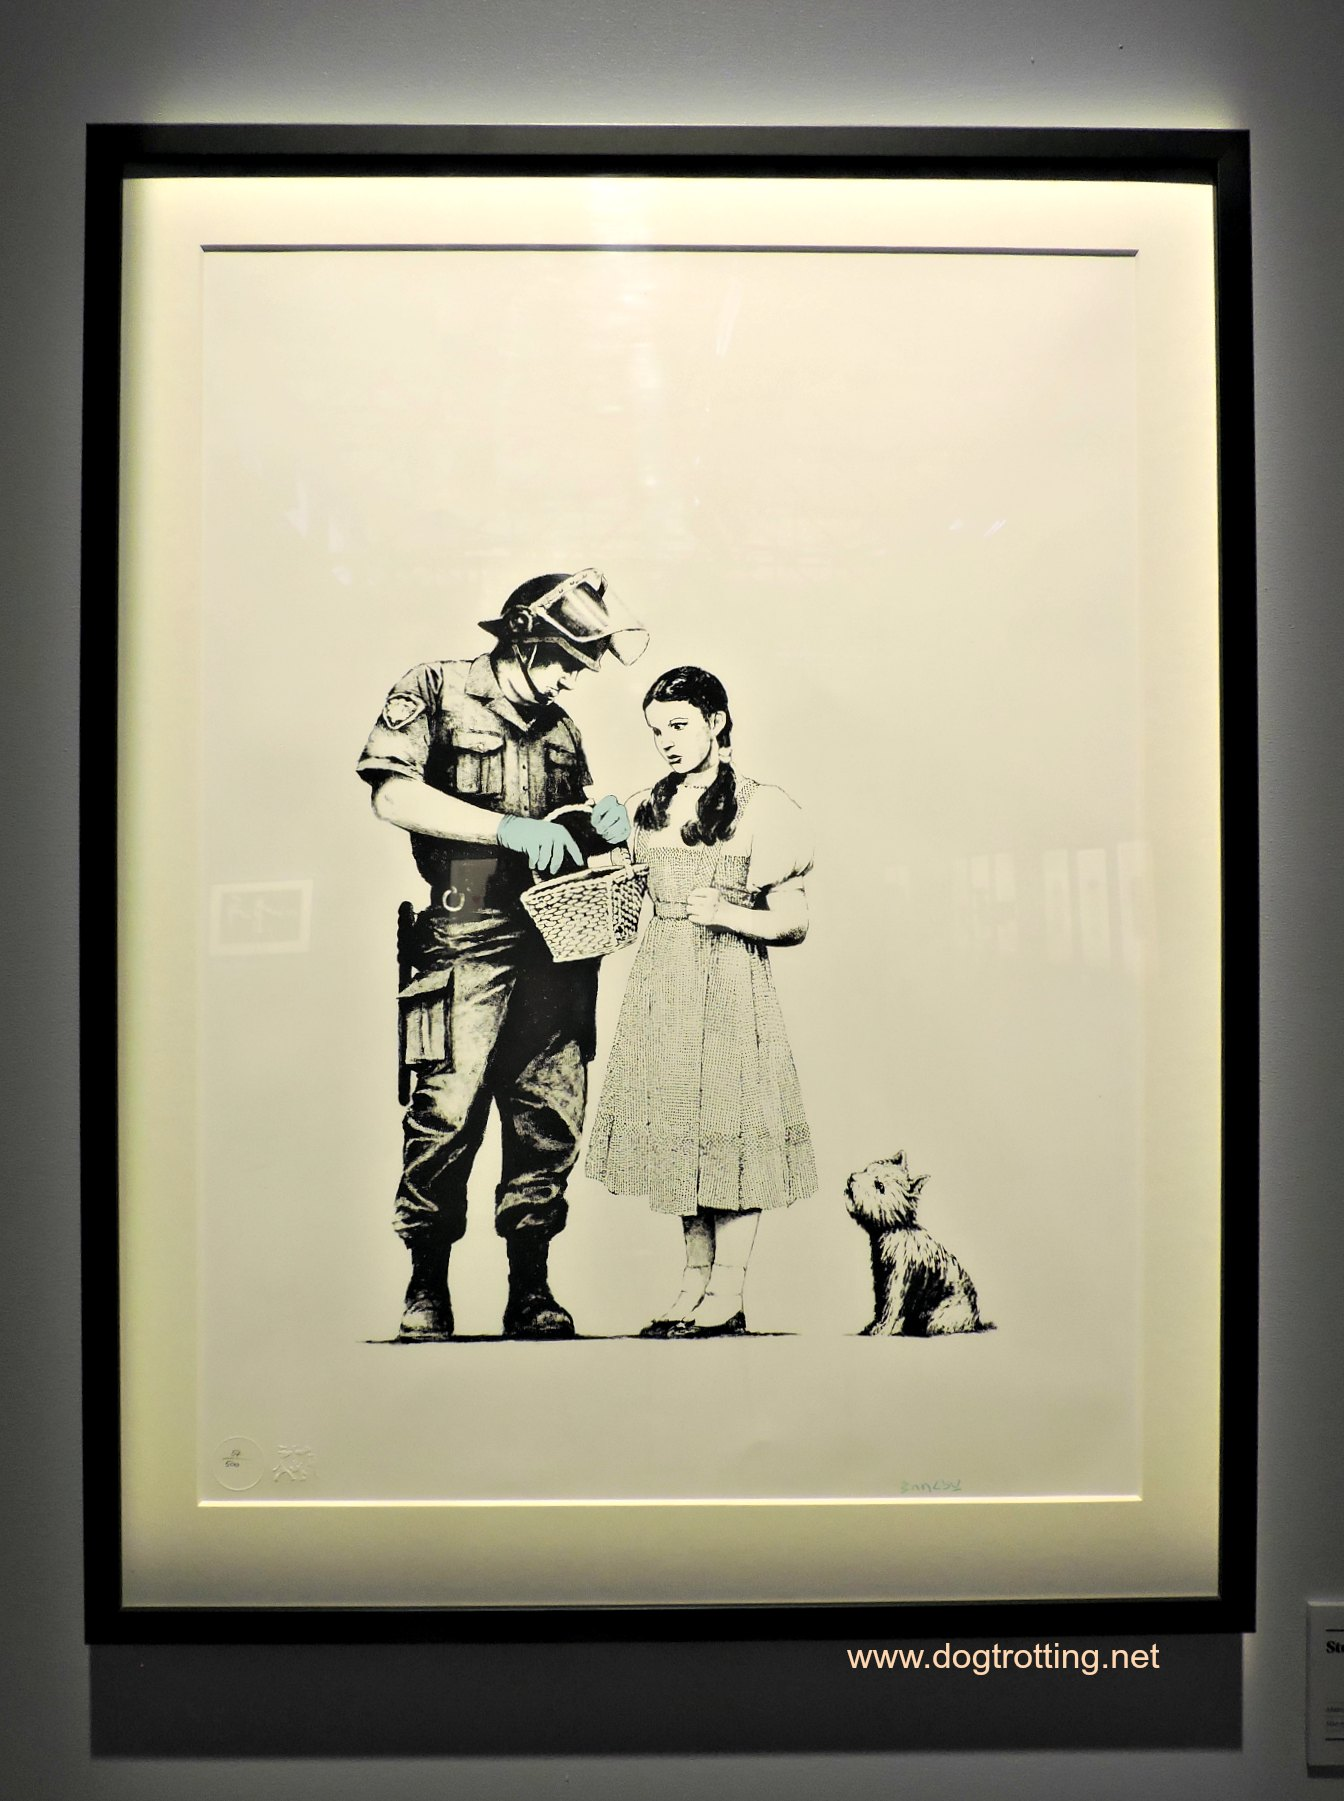 And Your Little Dog Too… The Art of Banksy, Toronto, ON